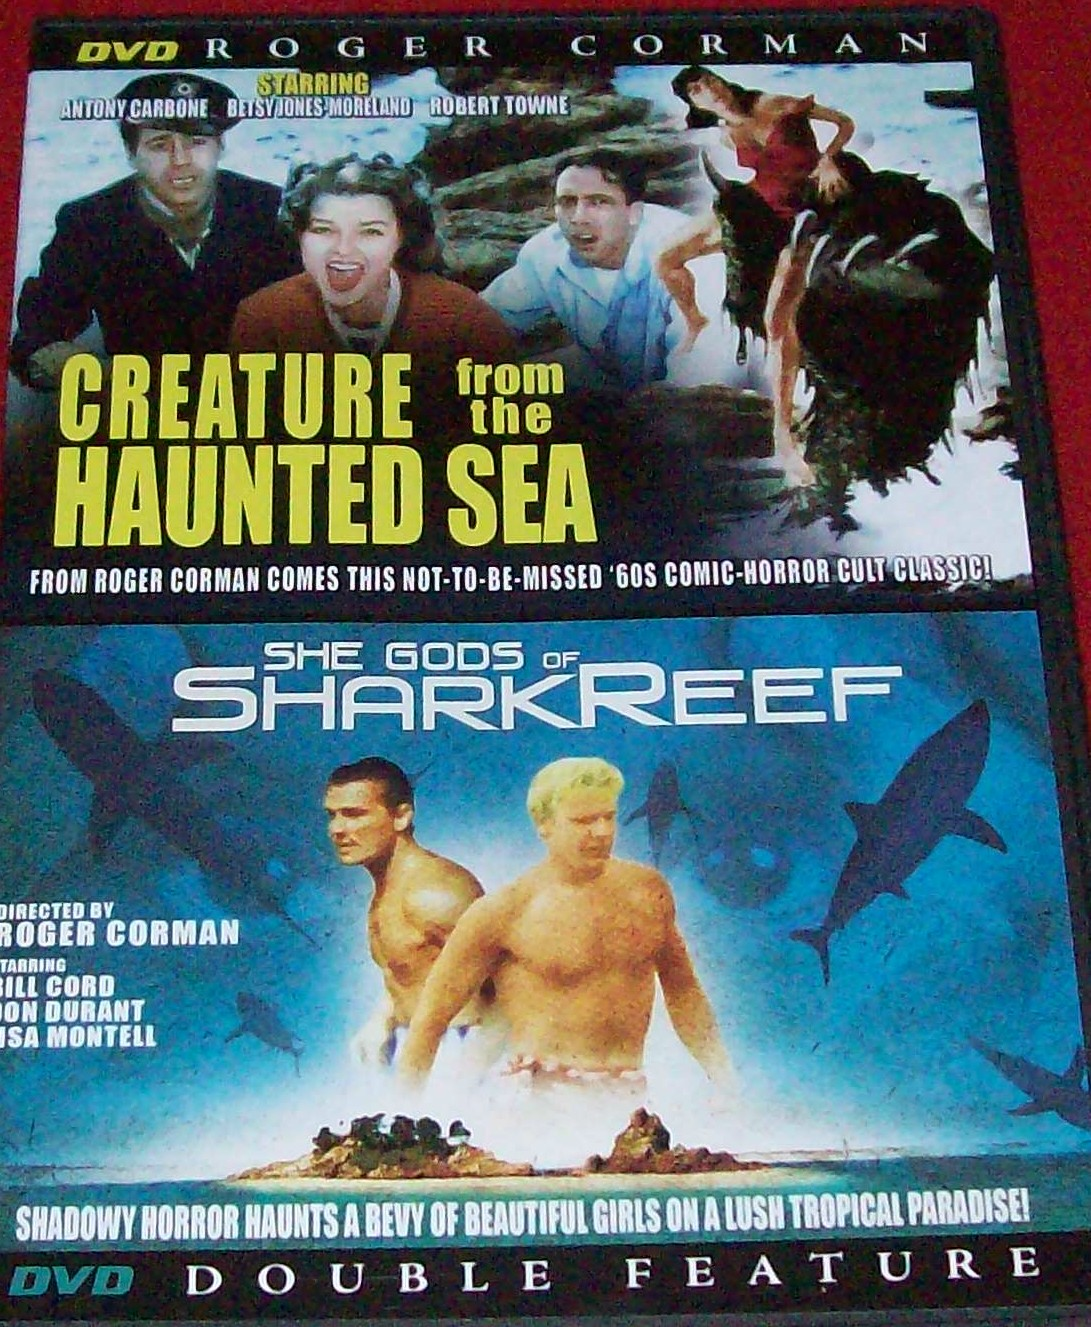 ... of the Shark Reef ($1.00) The bargain racks seem to overflow with  double features like this, with public domain movies put out cheaply (see  Cock Fighter ...